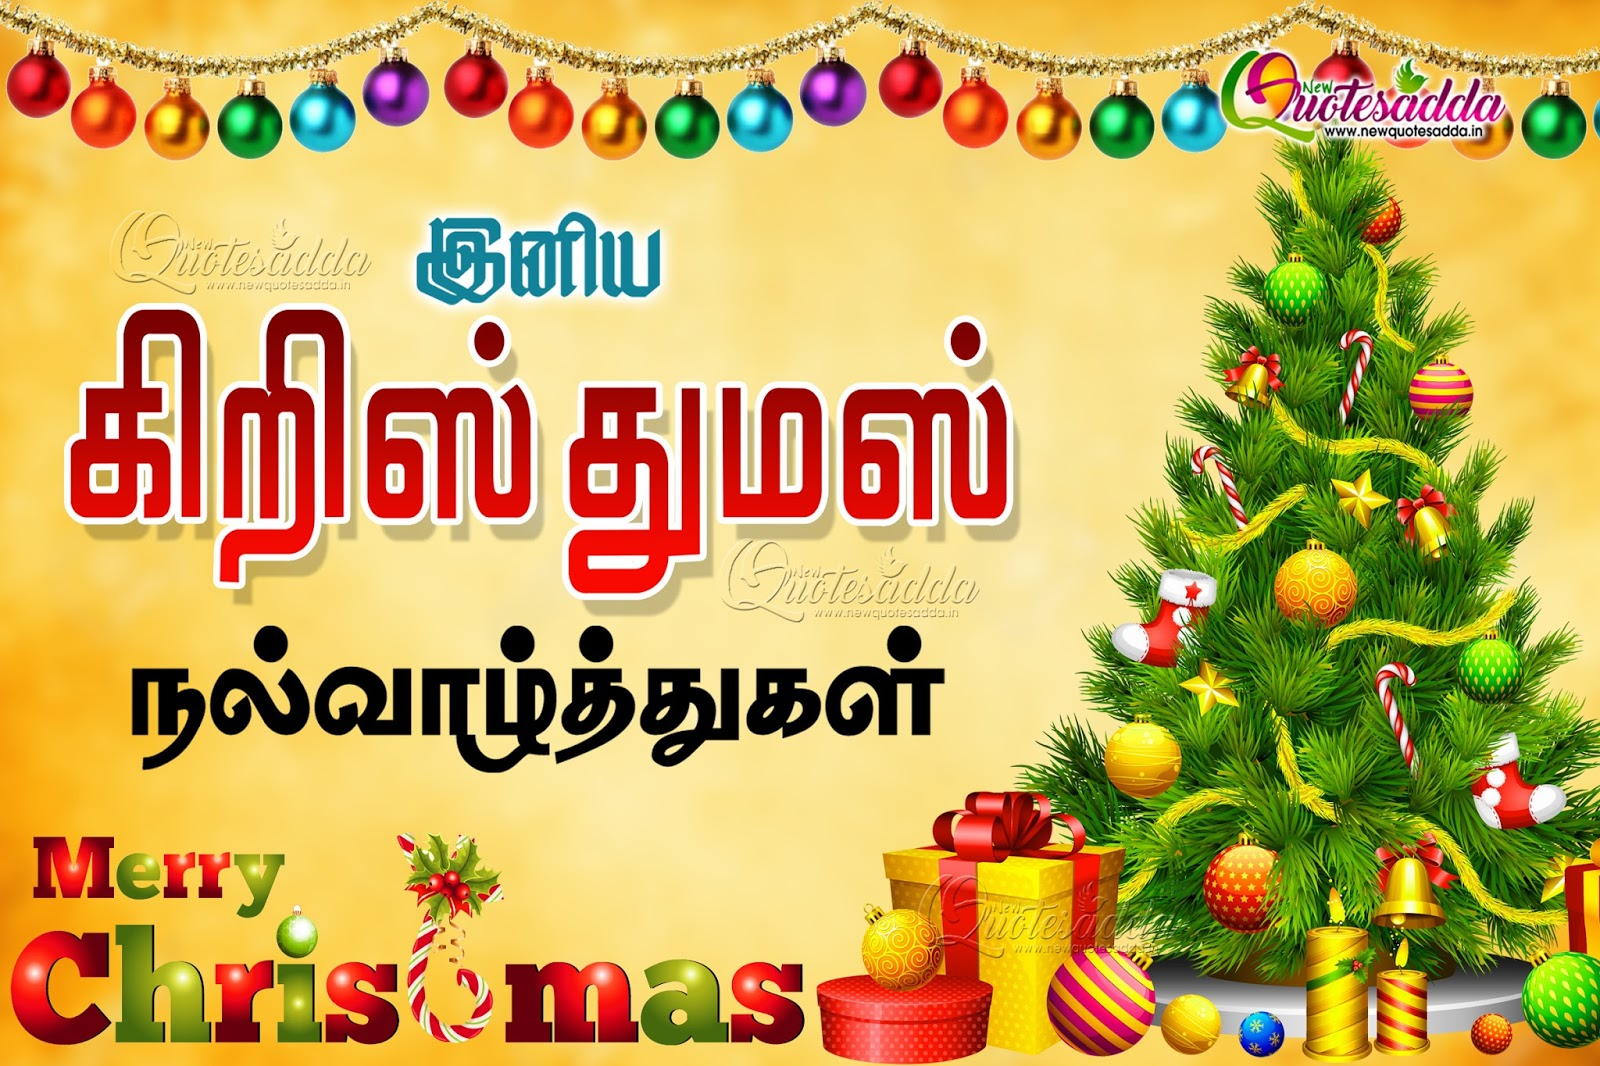 Happy Christmas Tamil Quotations Nice Images Online Newquotesadda